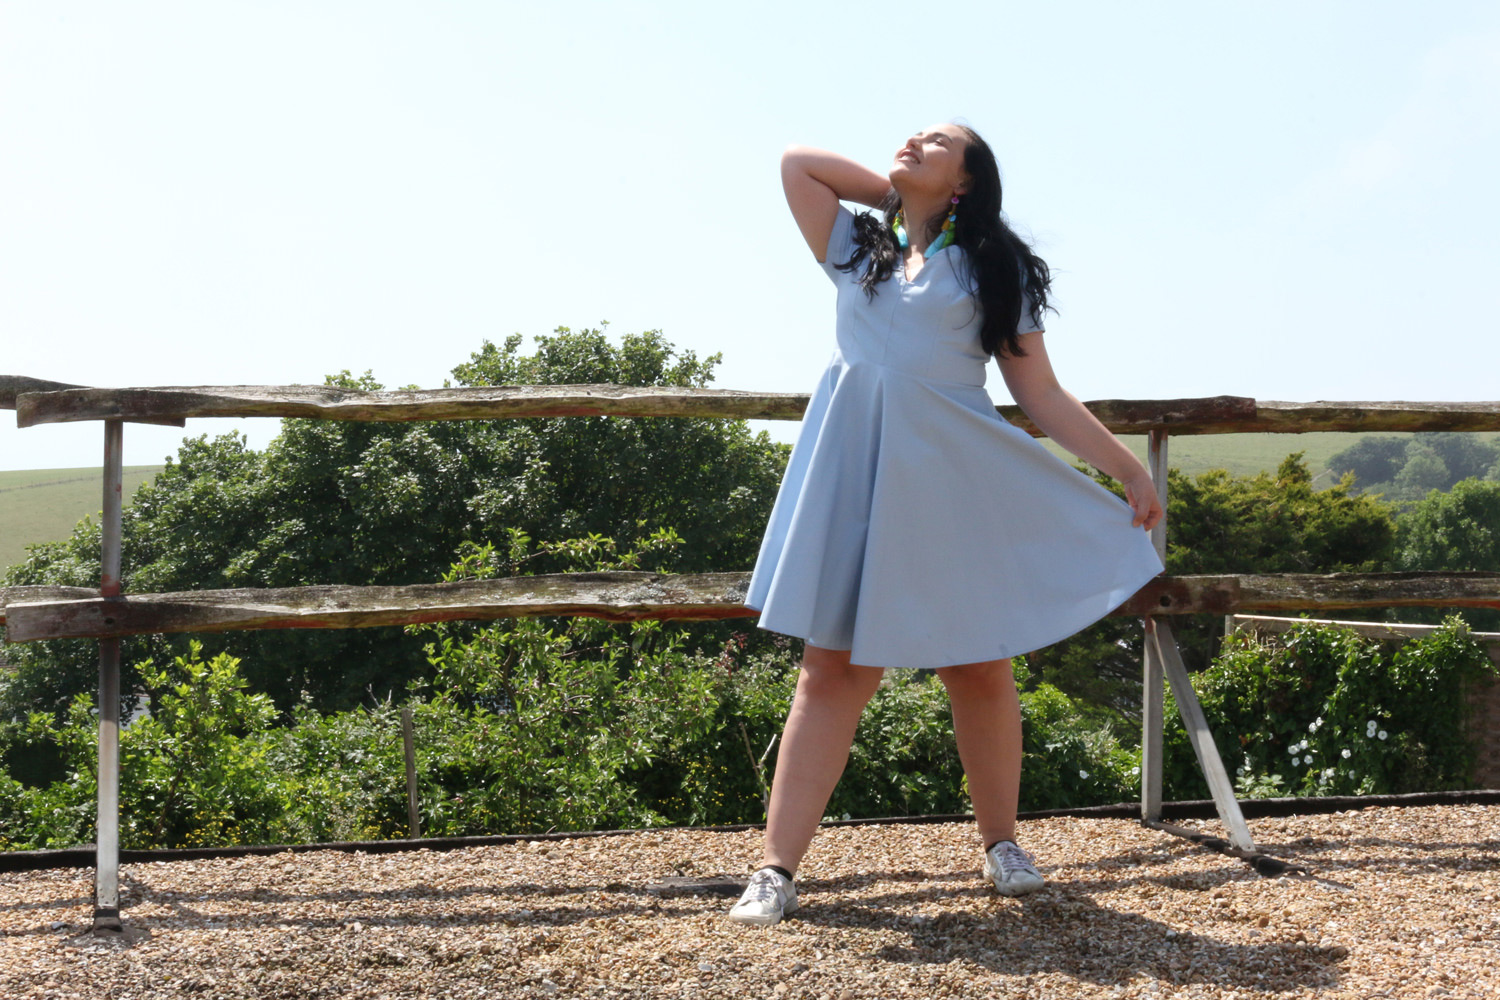 Kitty wears tassel earrings by  Hey Kitsch Kitty  & 'High in the Sky' Amy Dress by  The Emperor's Old Clothes